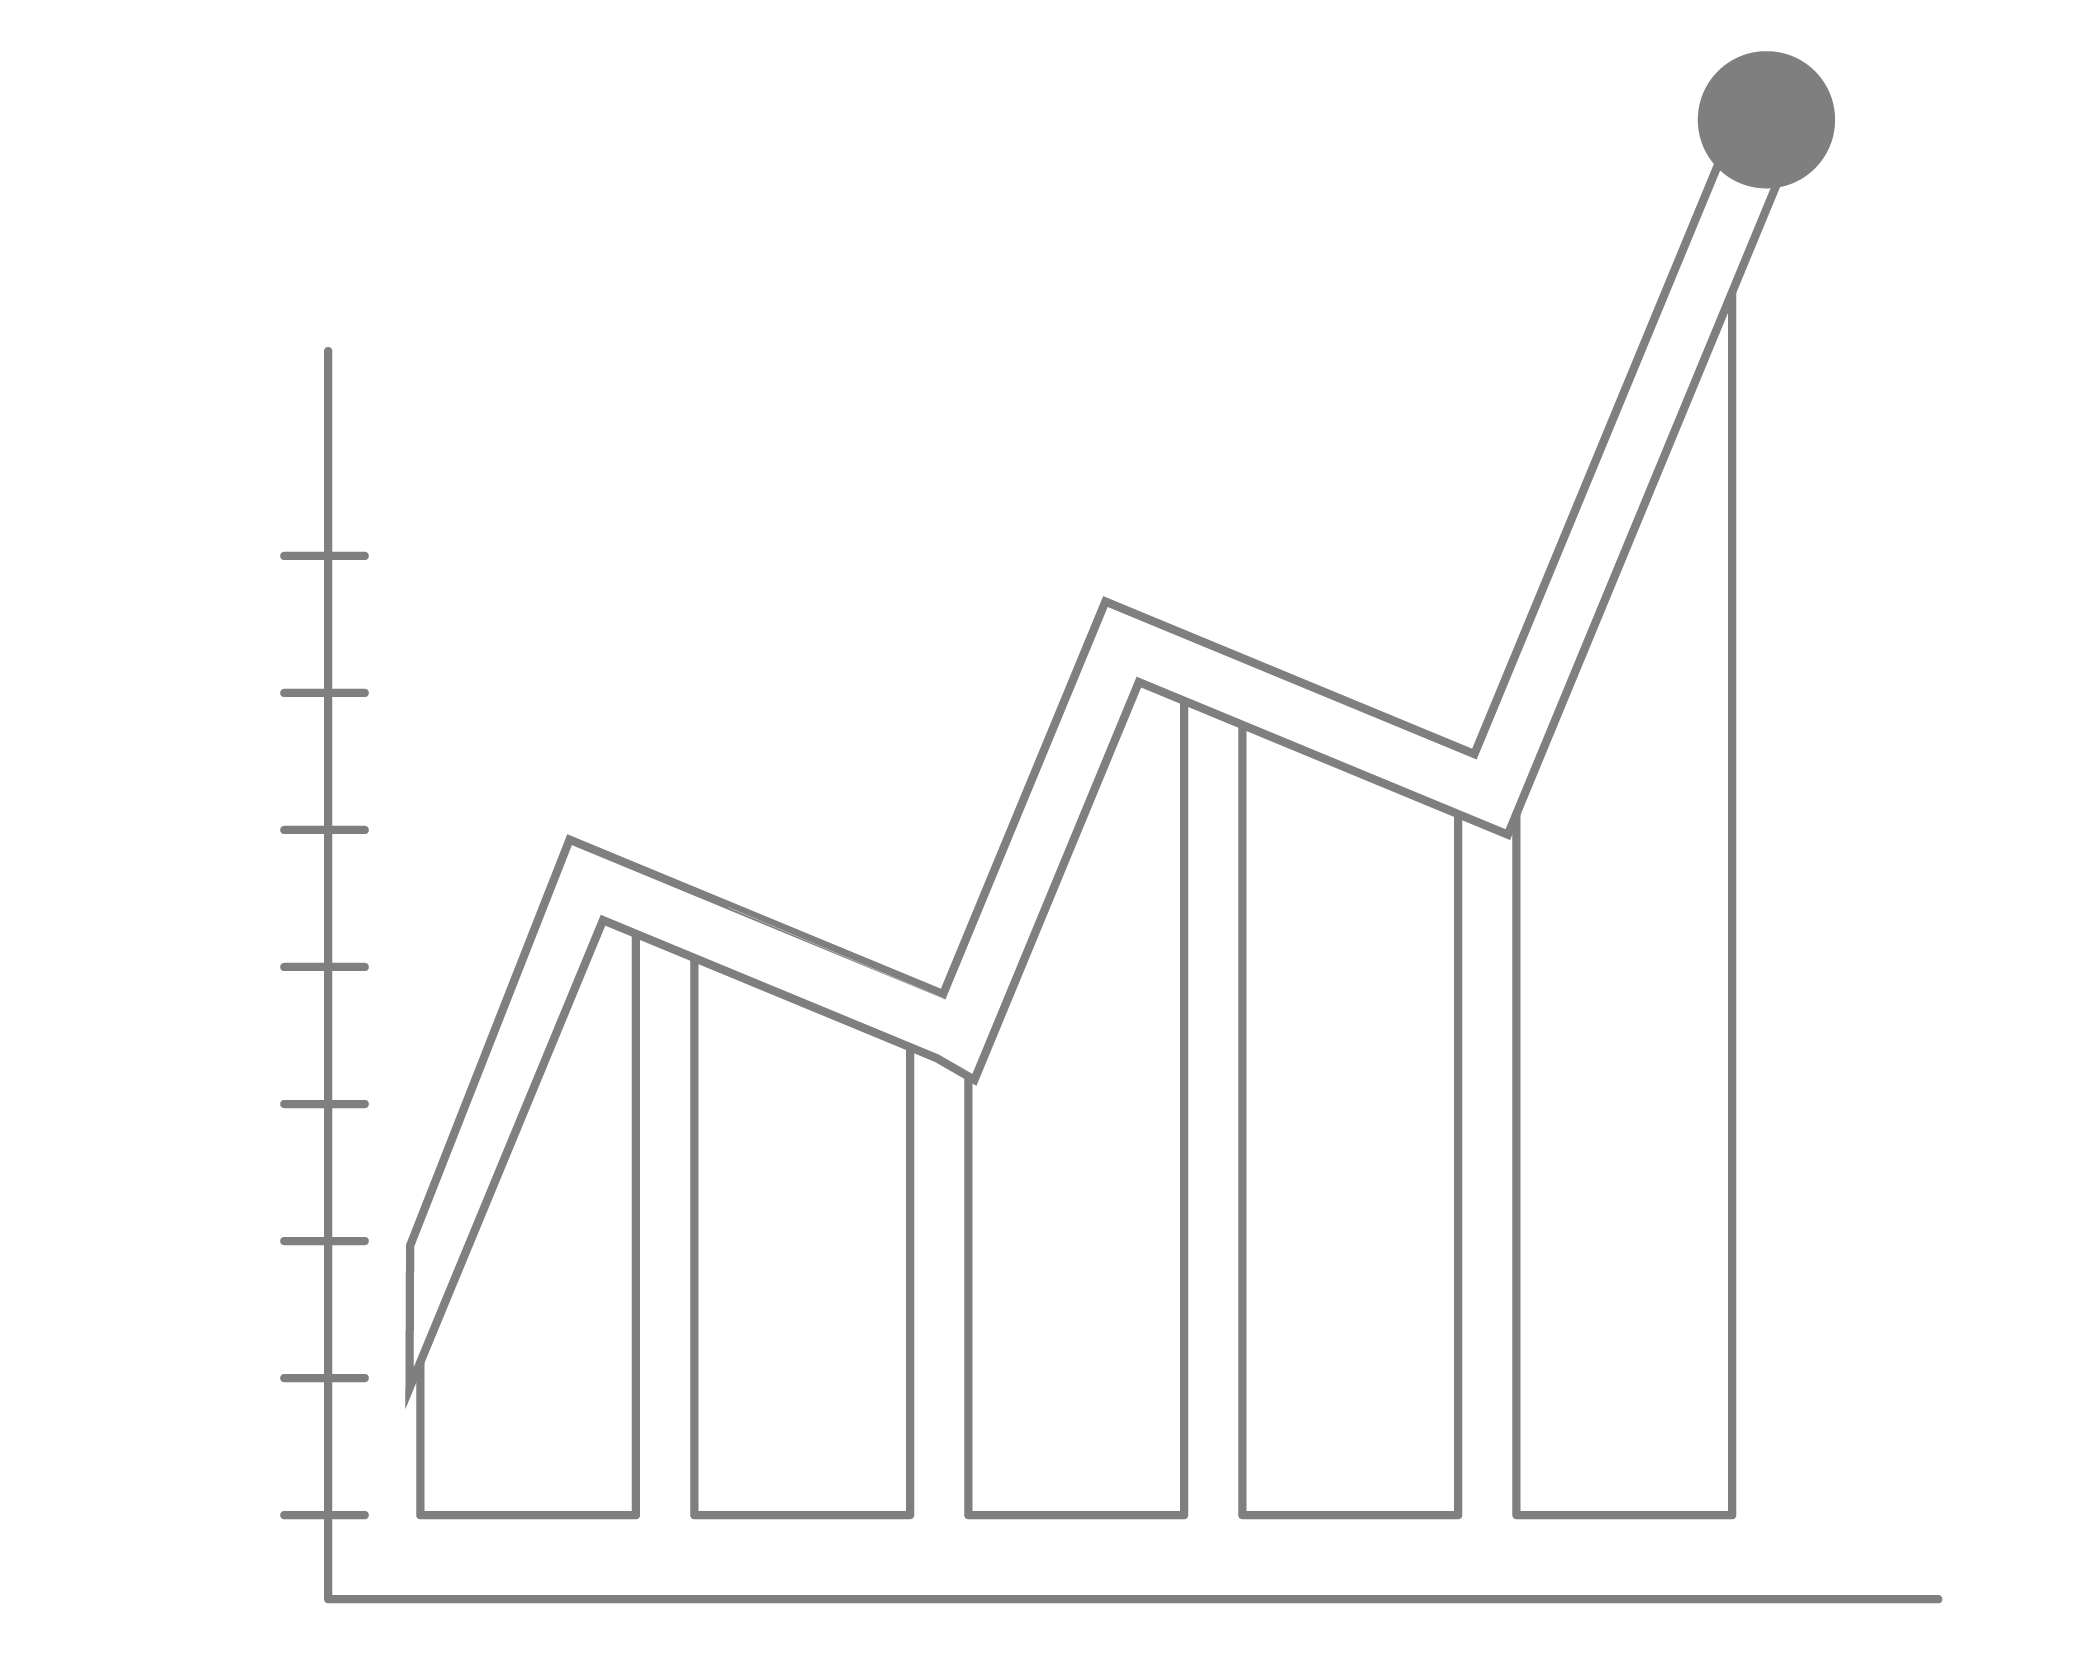 Bar graph showing a trend line above